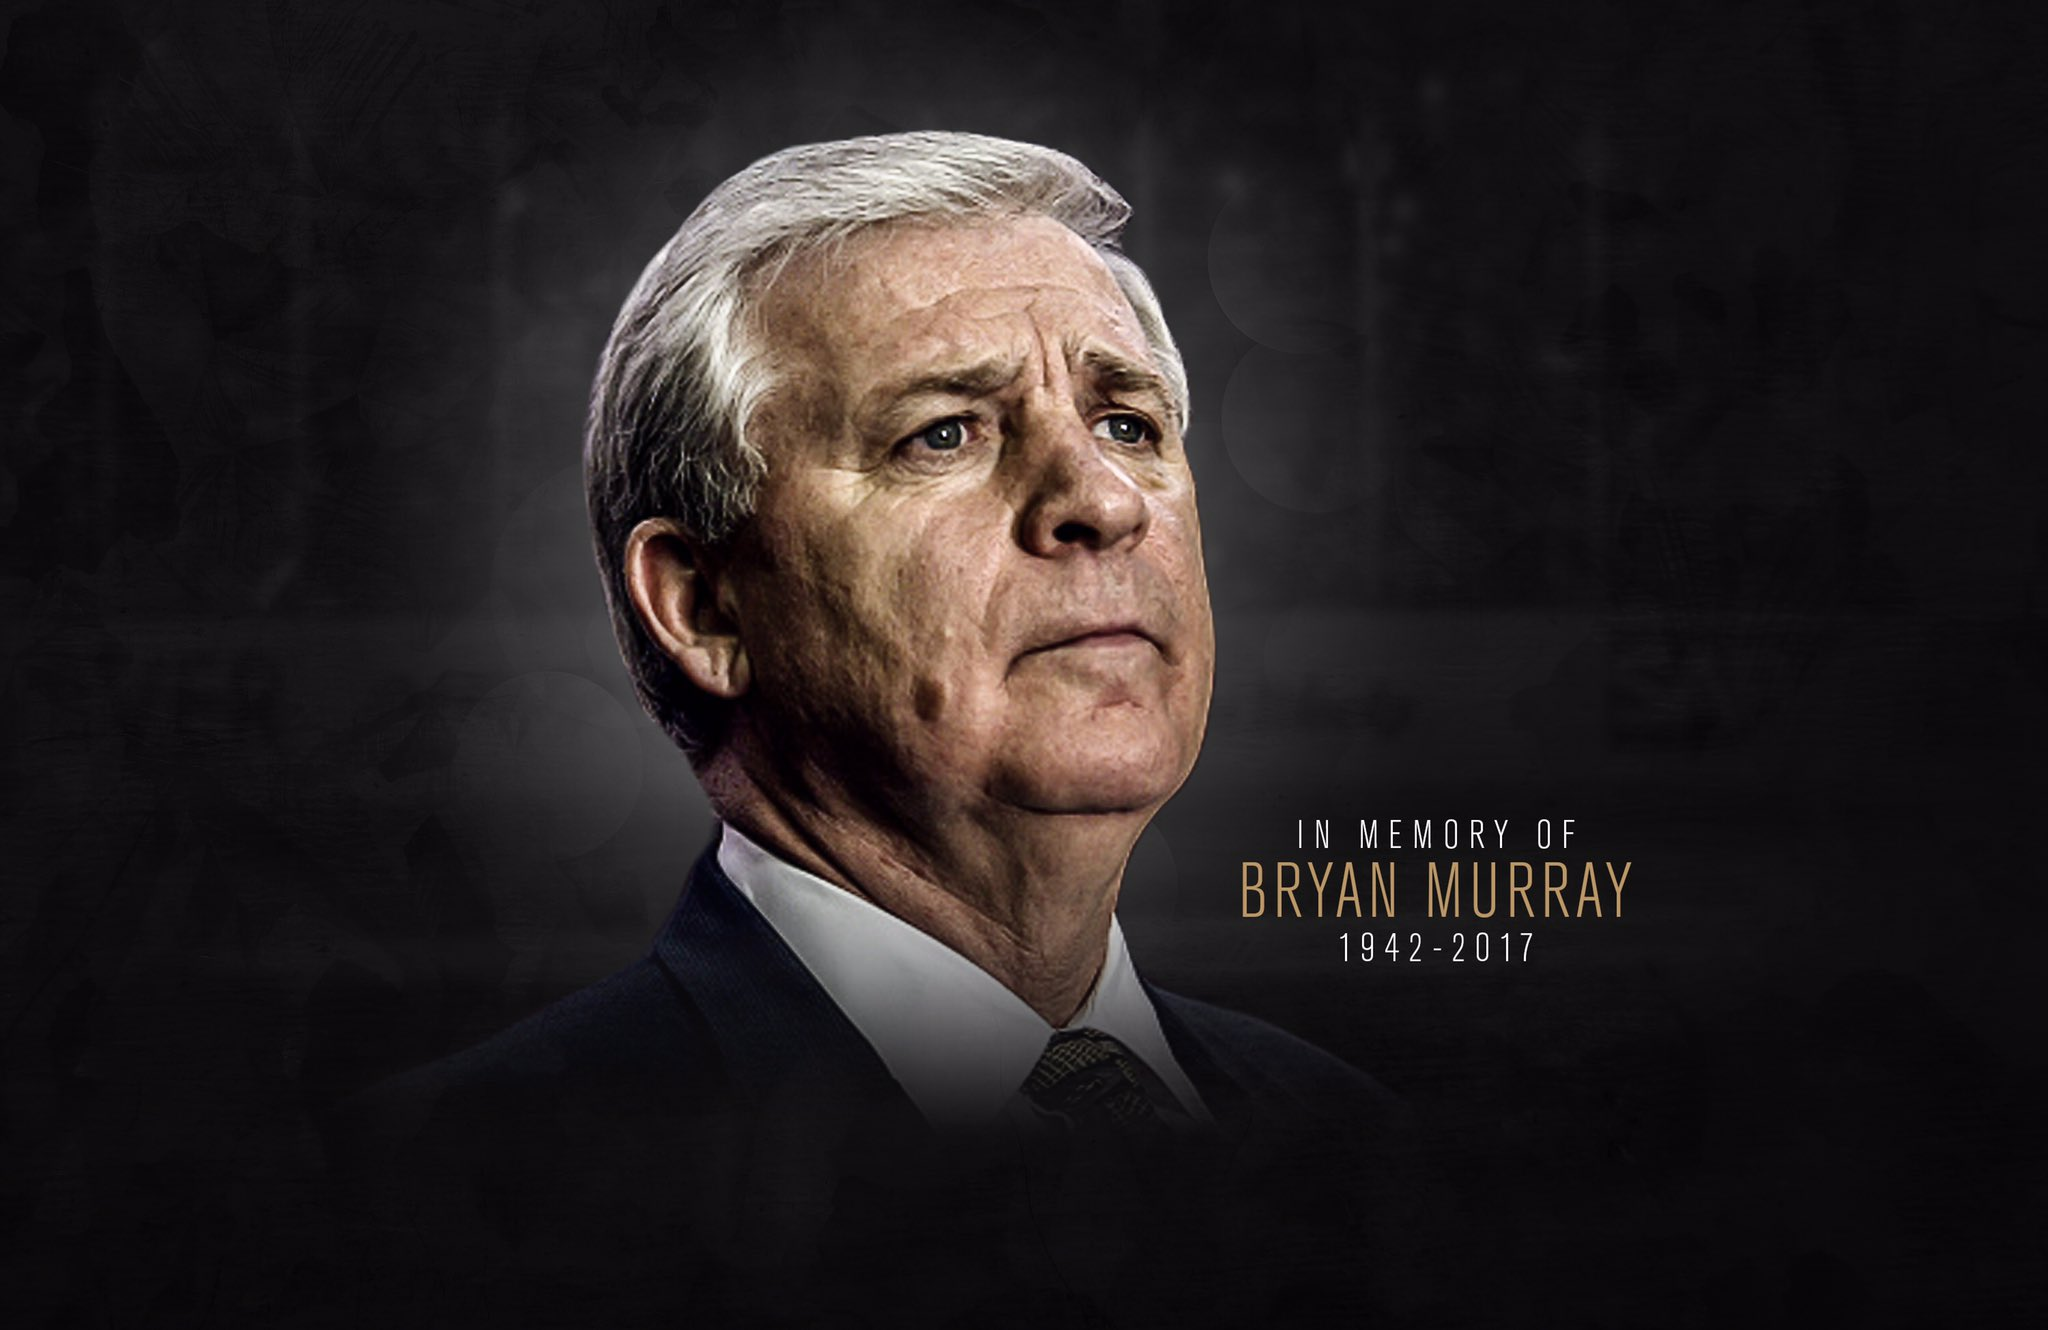 The Anaheim Ducks family mourns the passing of Bryan Murray: https://t.co/pC1VG0LUyE https://t.co/8FX6H1Au0w